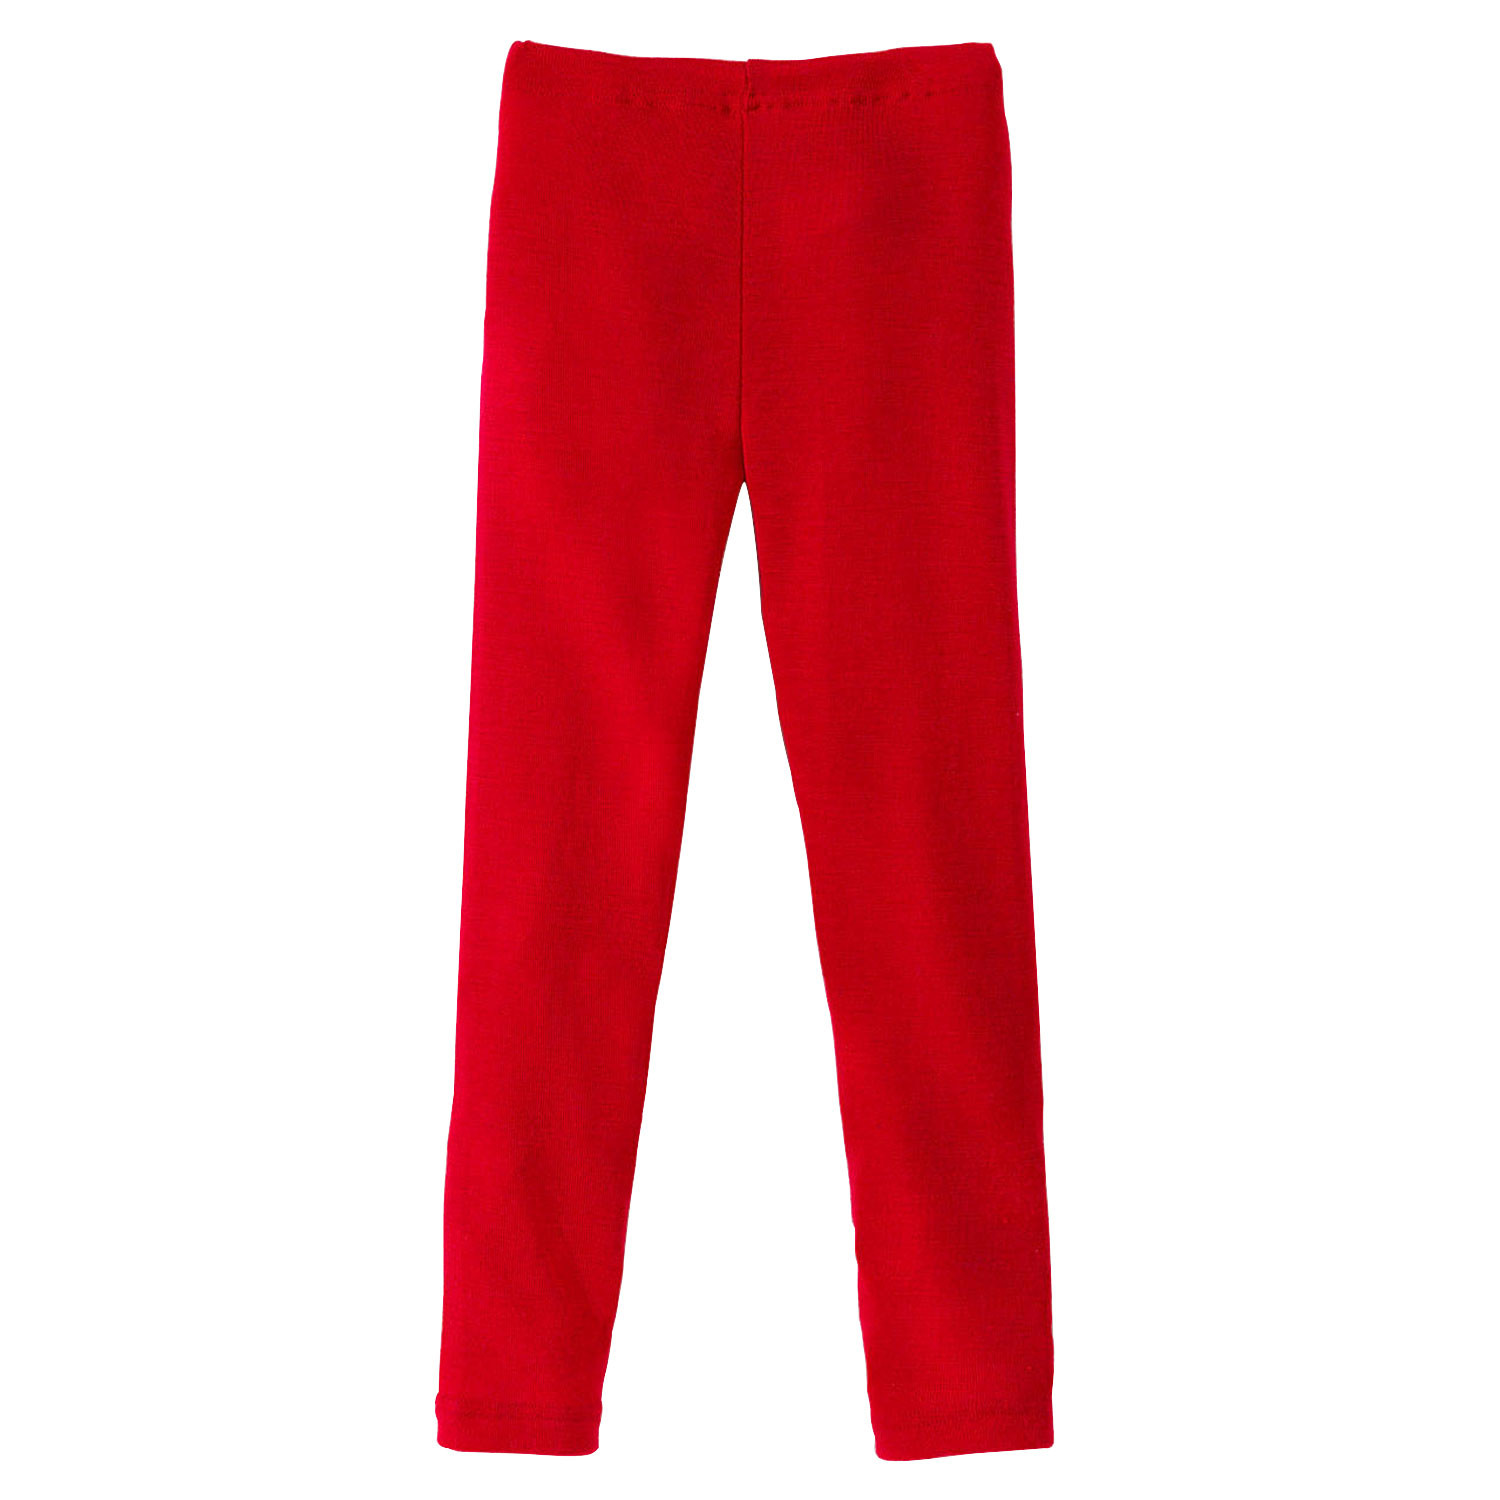 Kinder-Leggings, rot